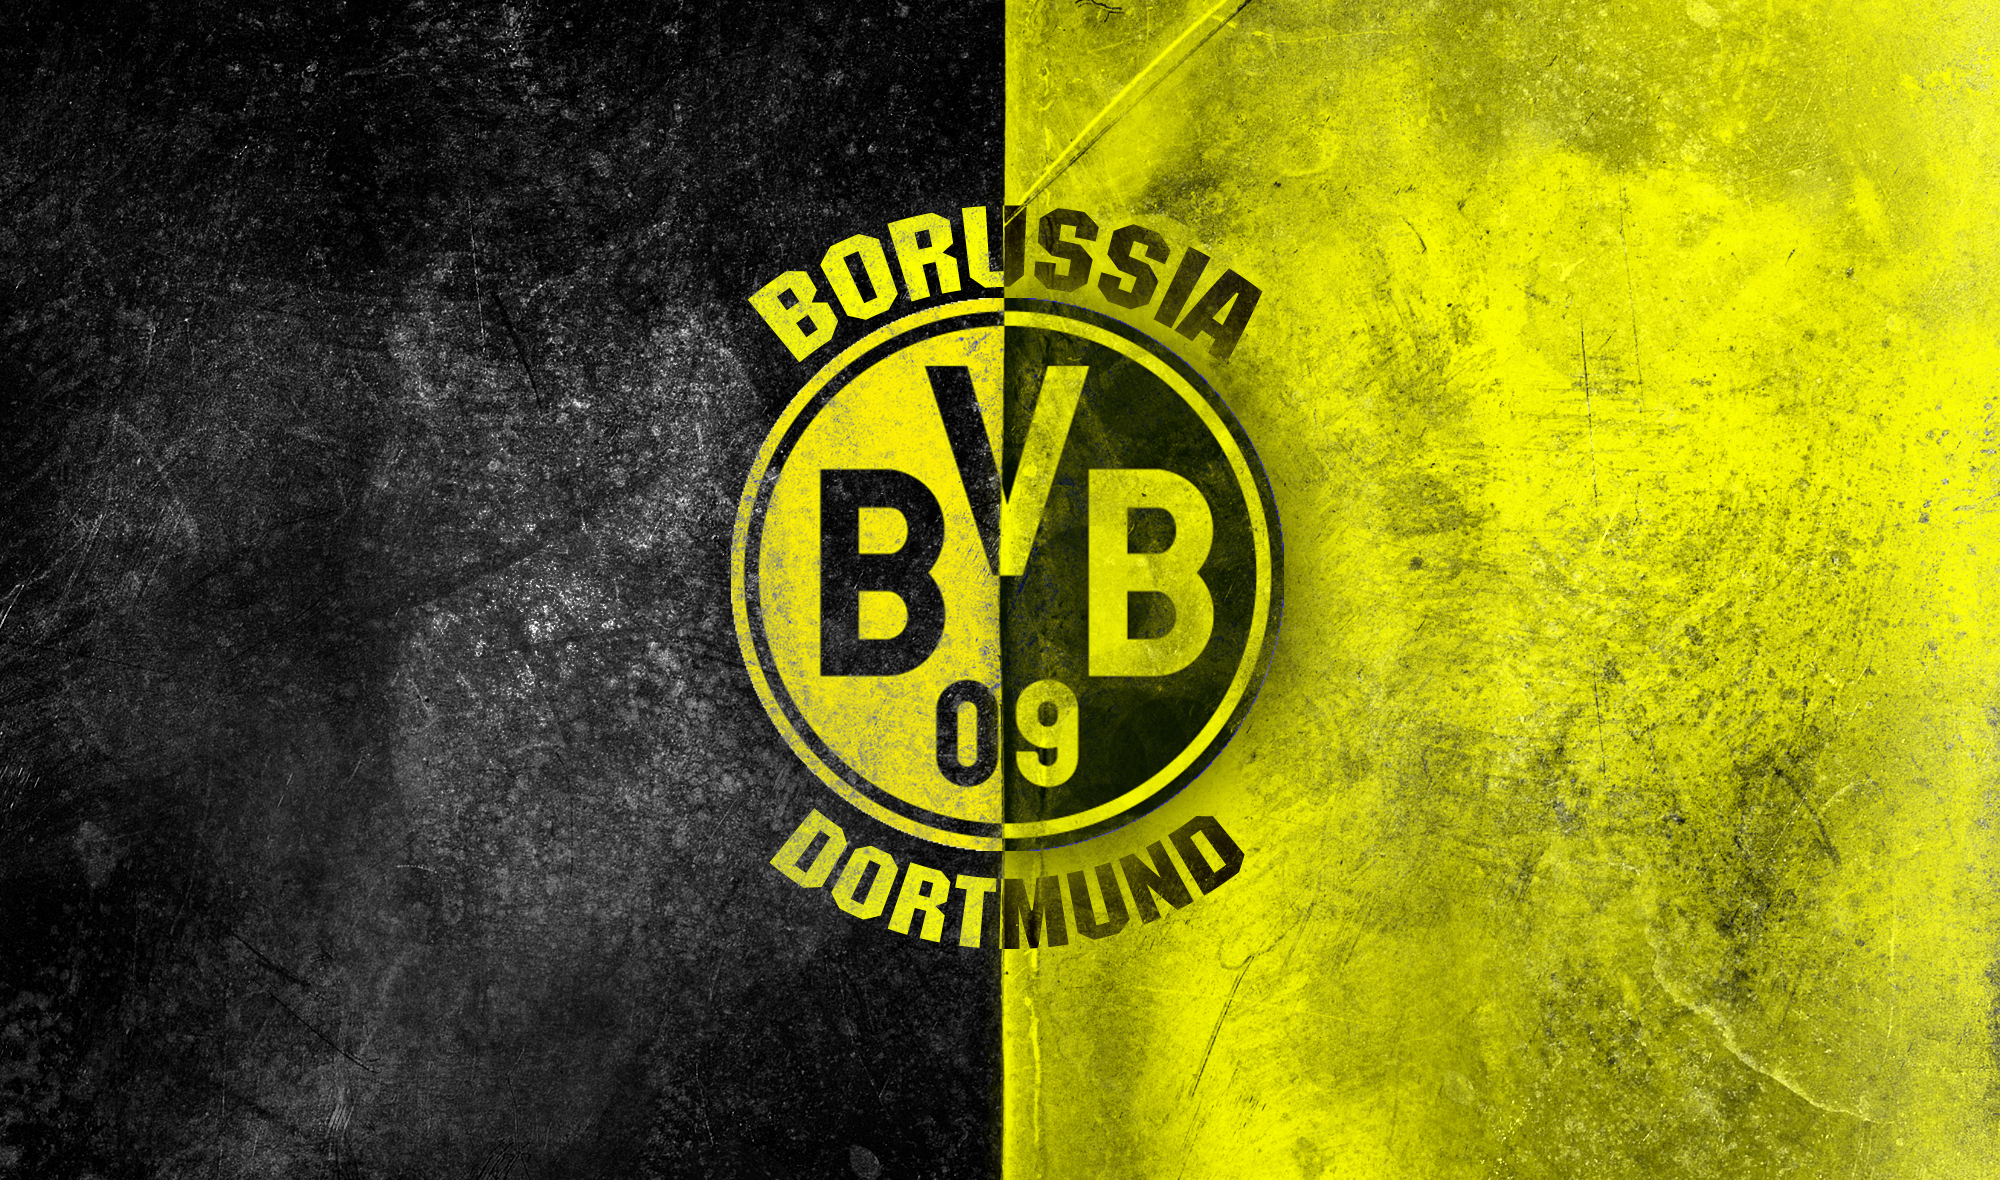 Borussia Dortmund Backgrounds, Compatible - PC, Mobile, Gadgets| 2000x1180 px